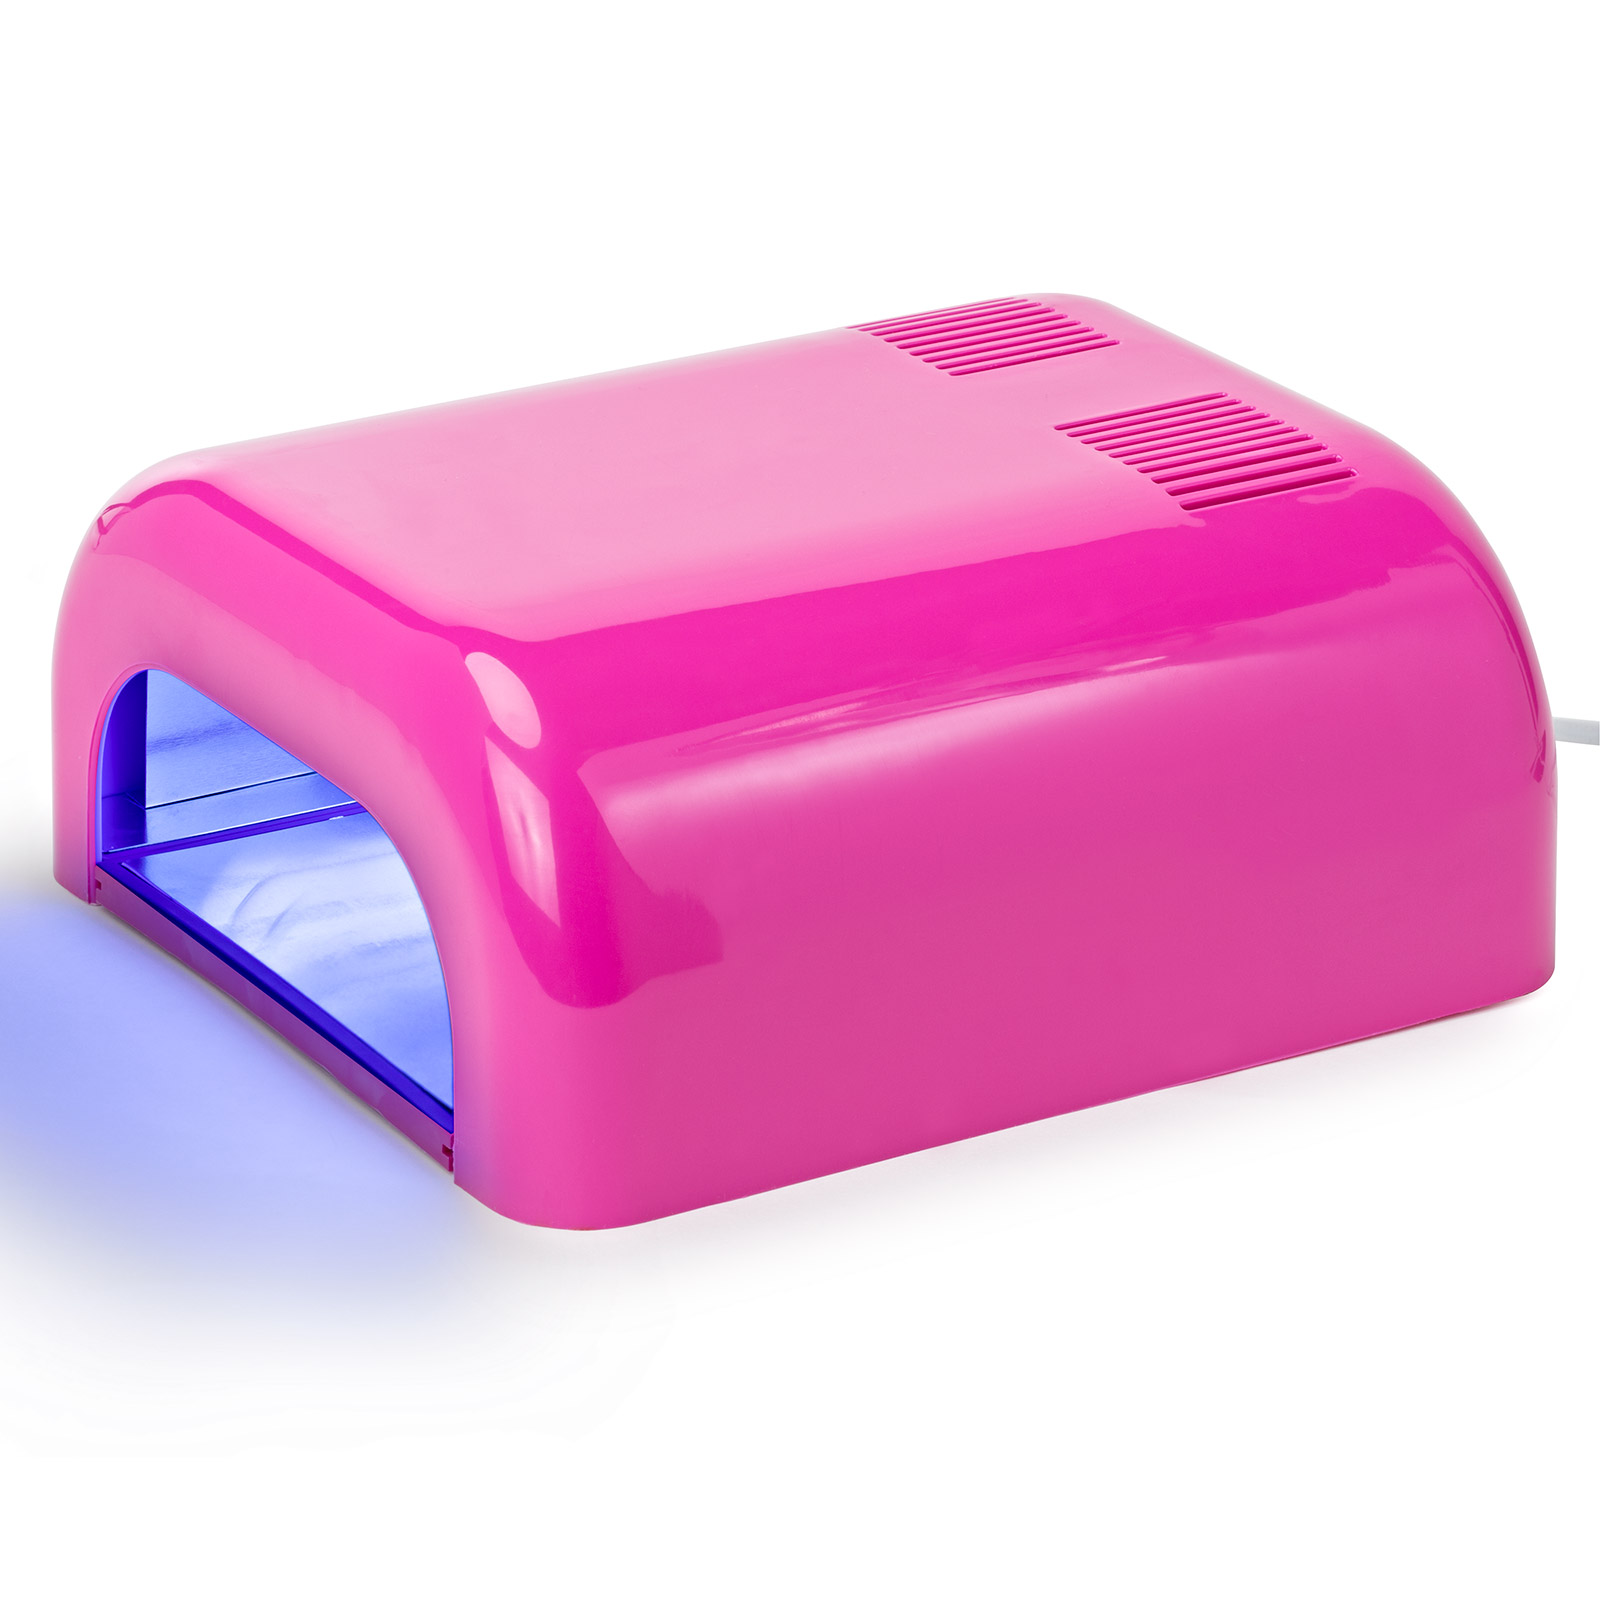 Details about UV Nail Lamp Dryer - Gel Polish Manicure Curing Light